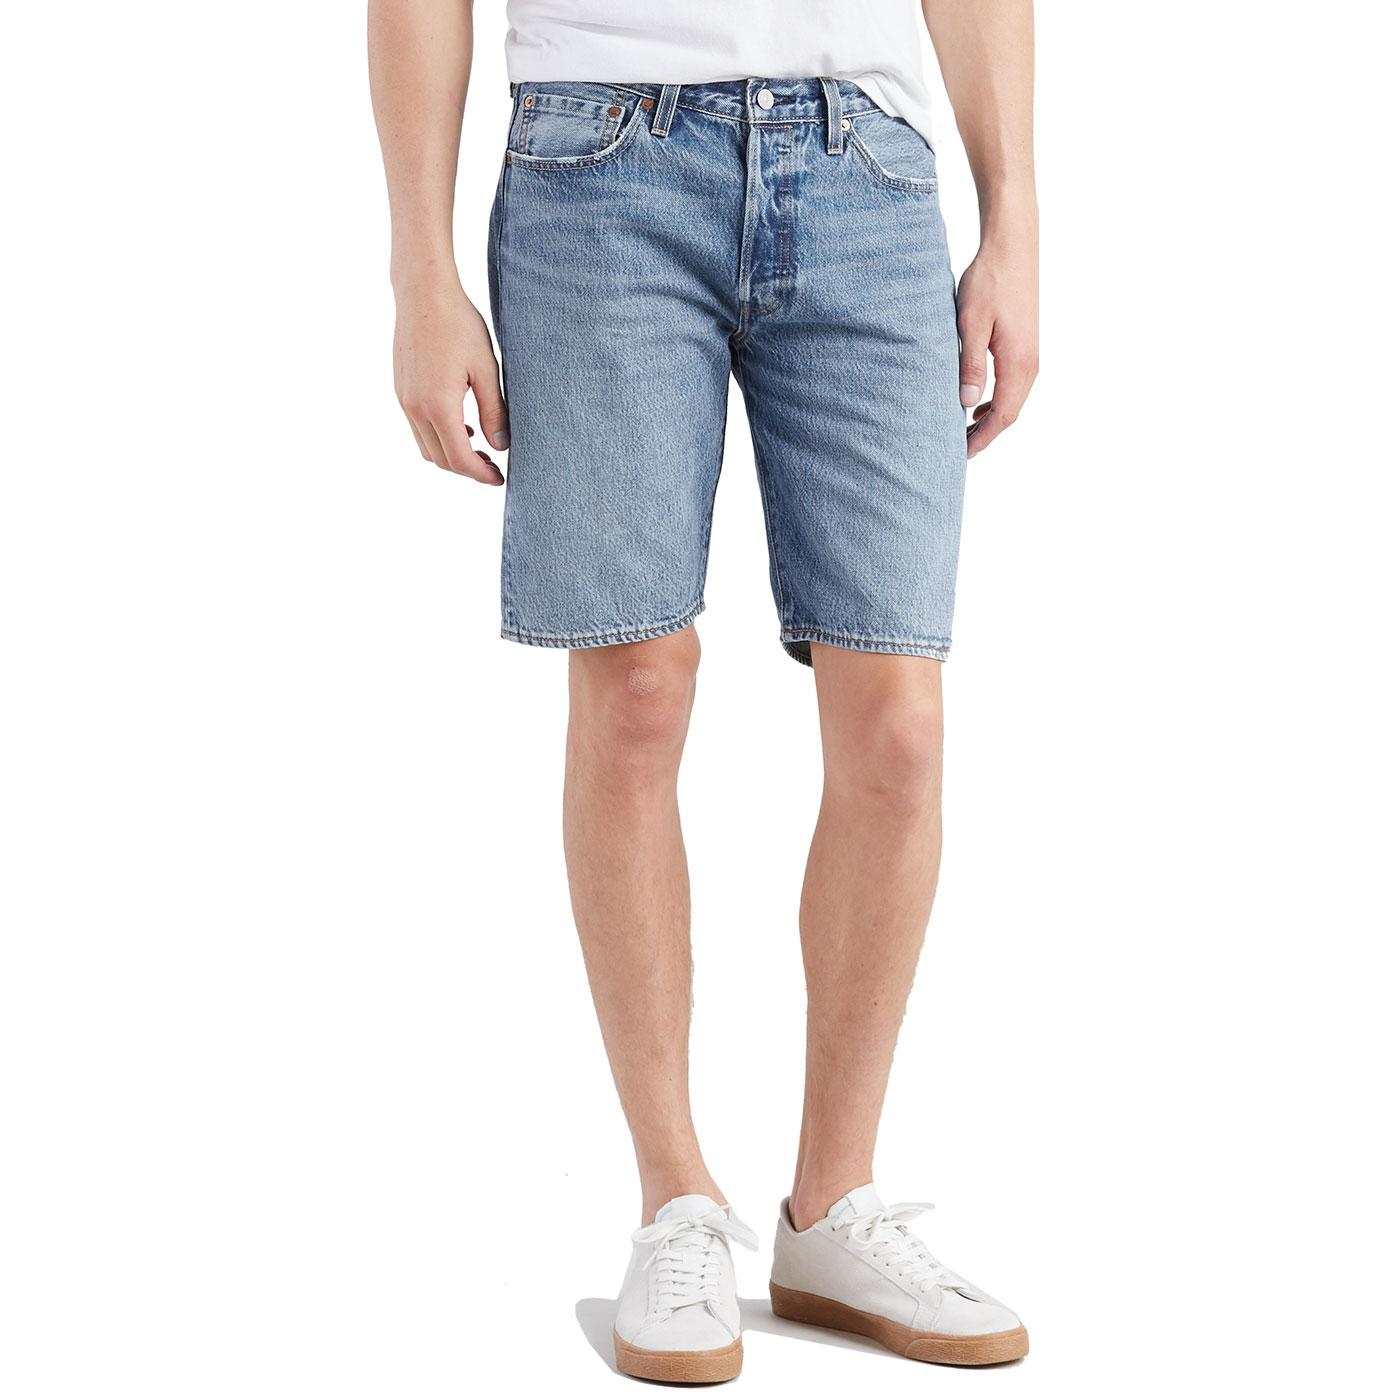 LEVI'S 501 Retro Denim Hemmed Shorts (Marshmallow)